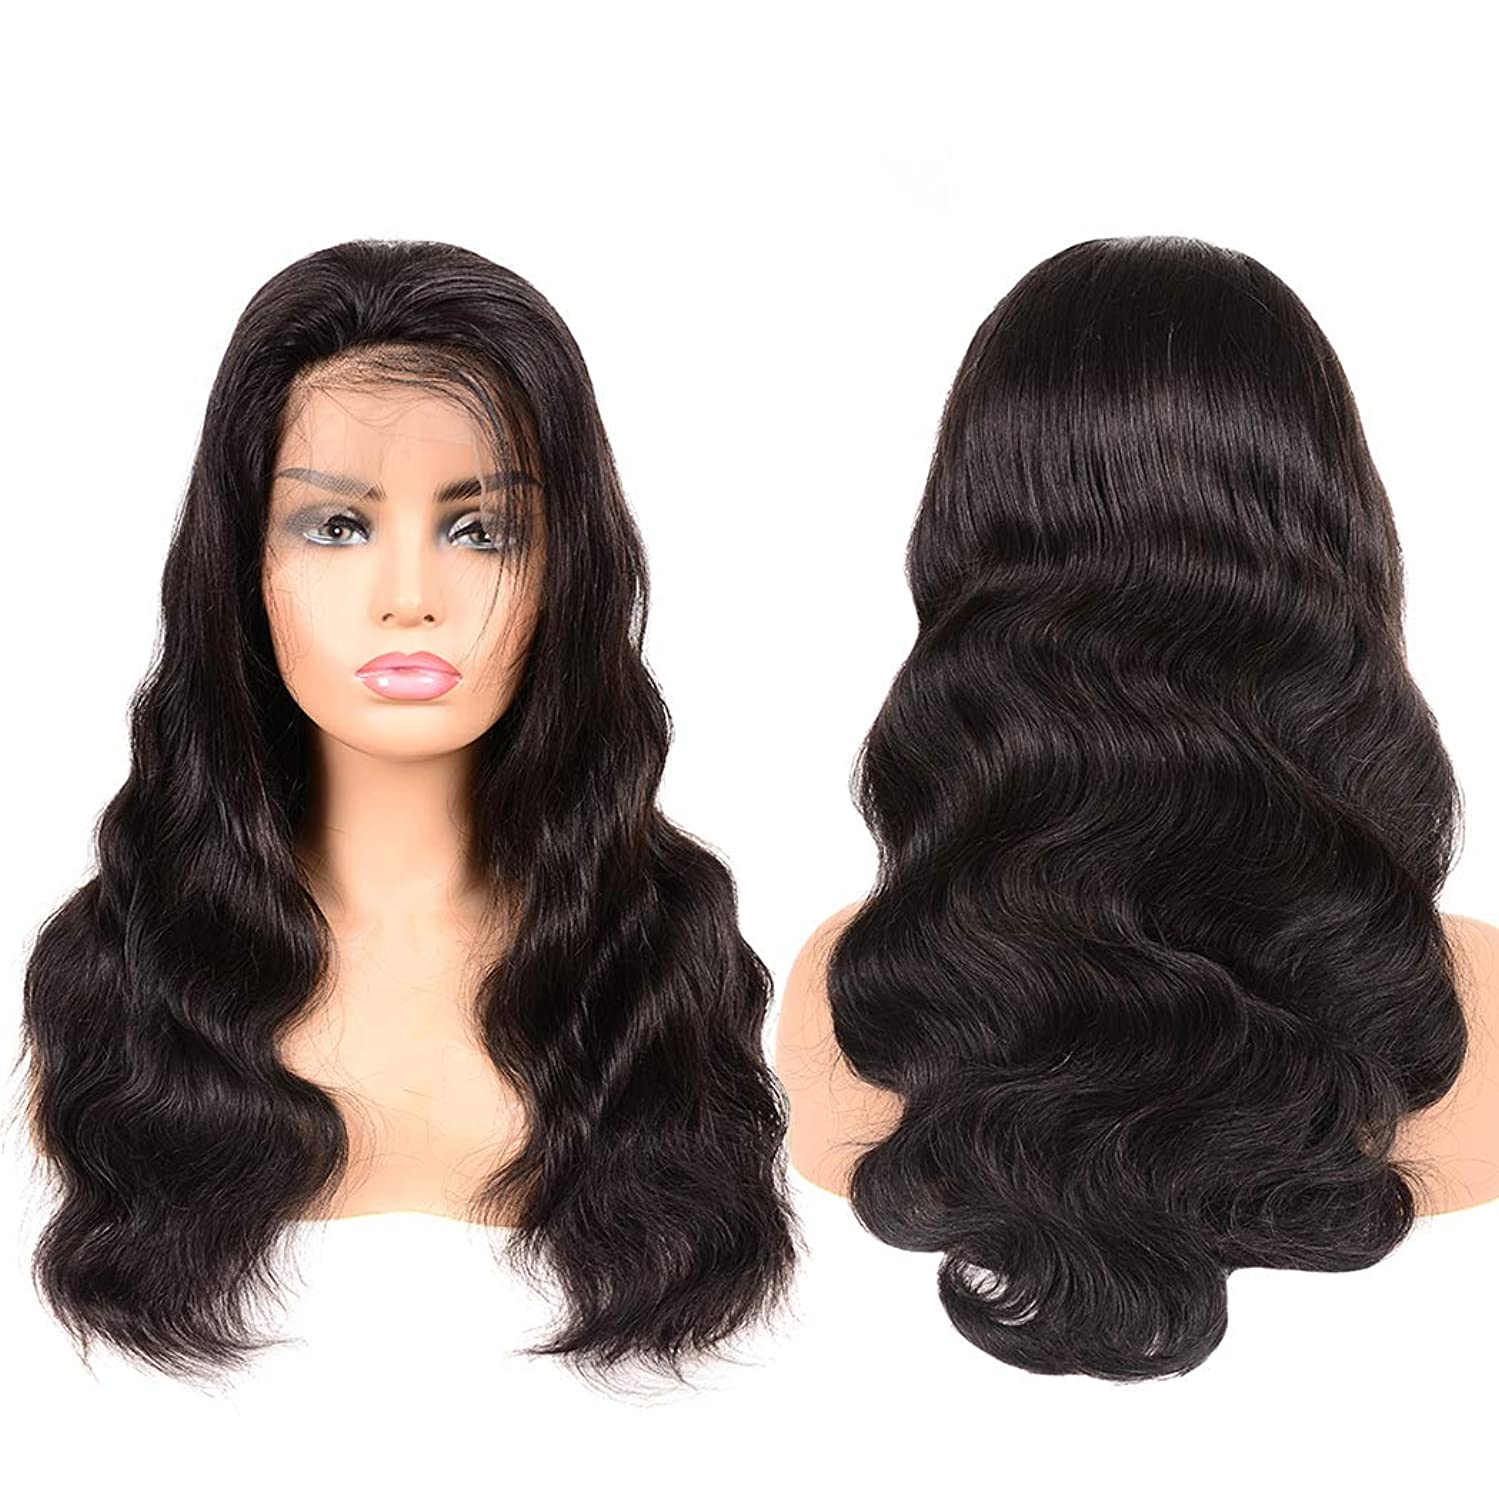 Full Lace Wigs Human Hair 14inch Body Wave Human Hair Wigs with Pre Plucked Hairline Human Hair Lace Wigs 180% Density